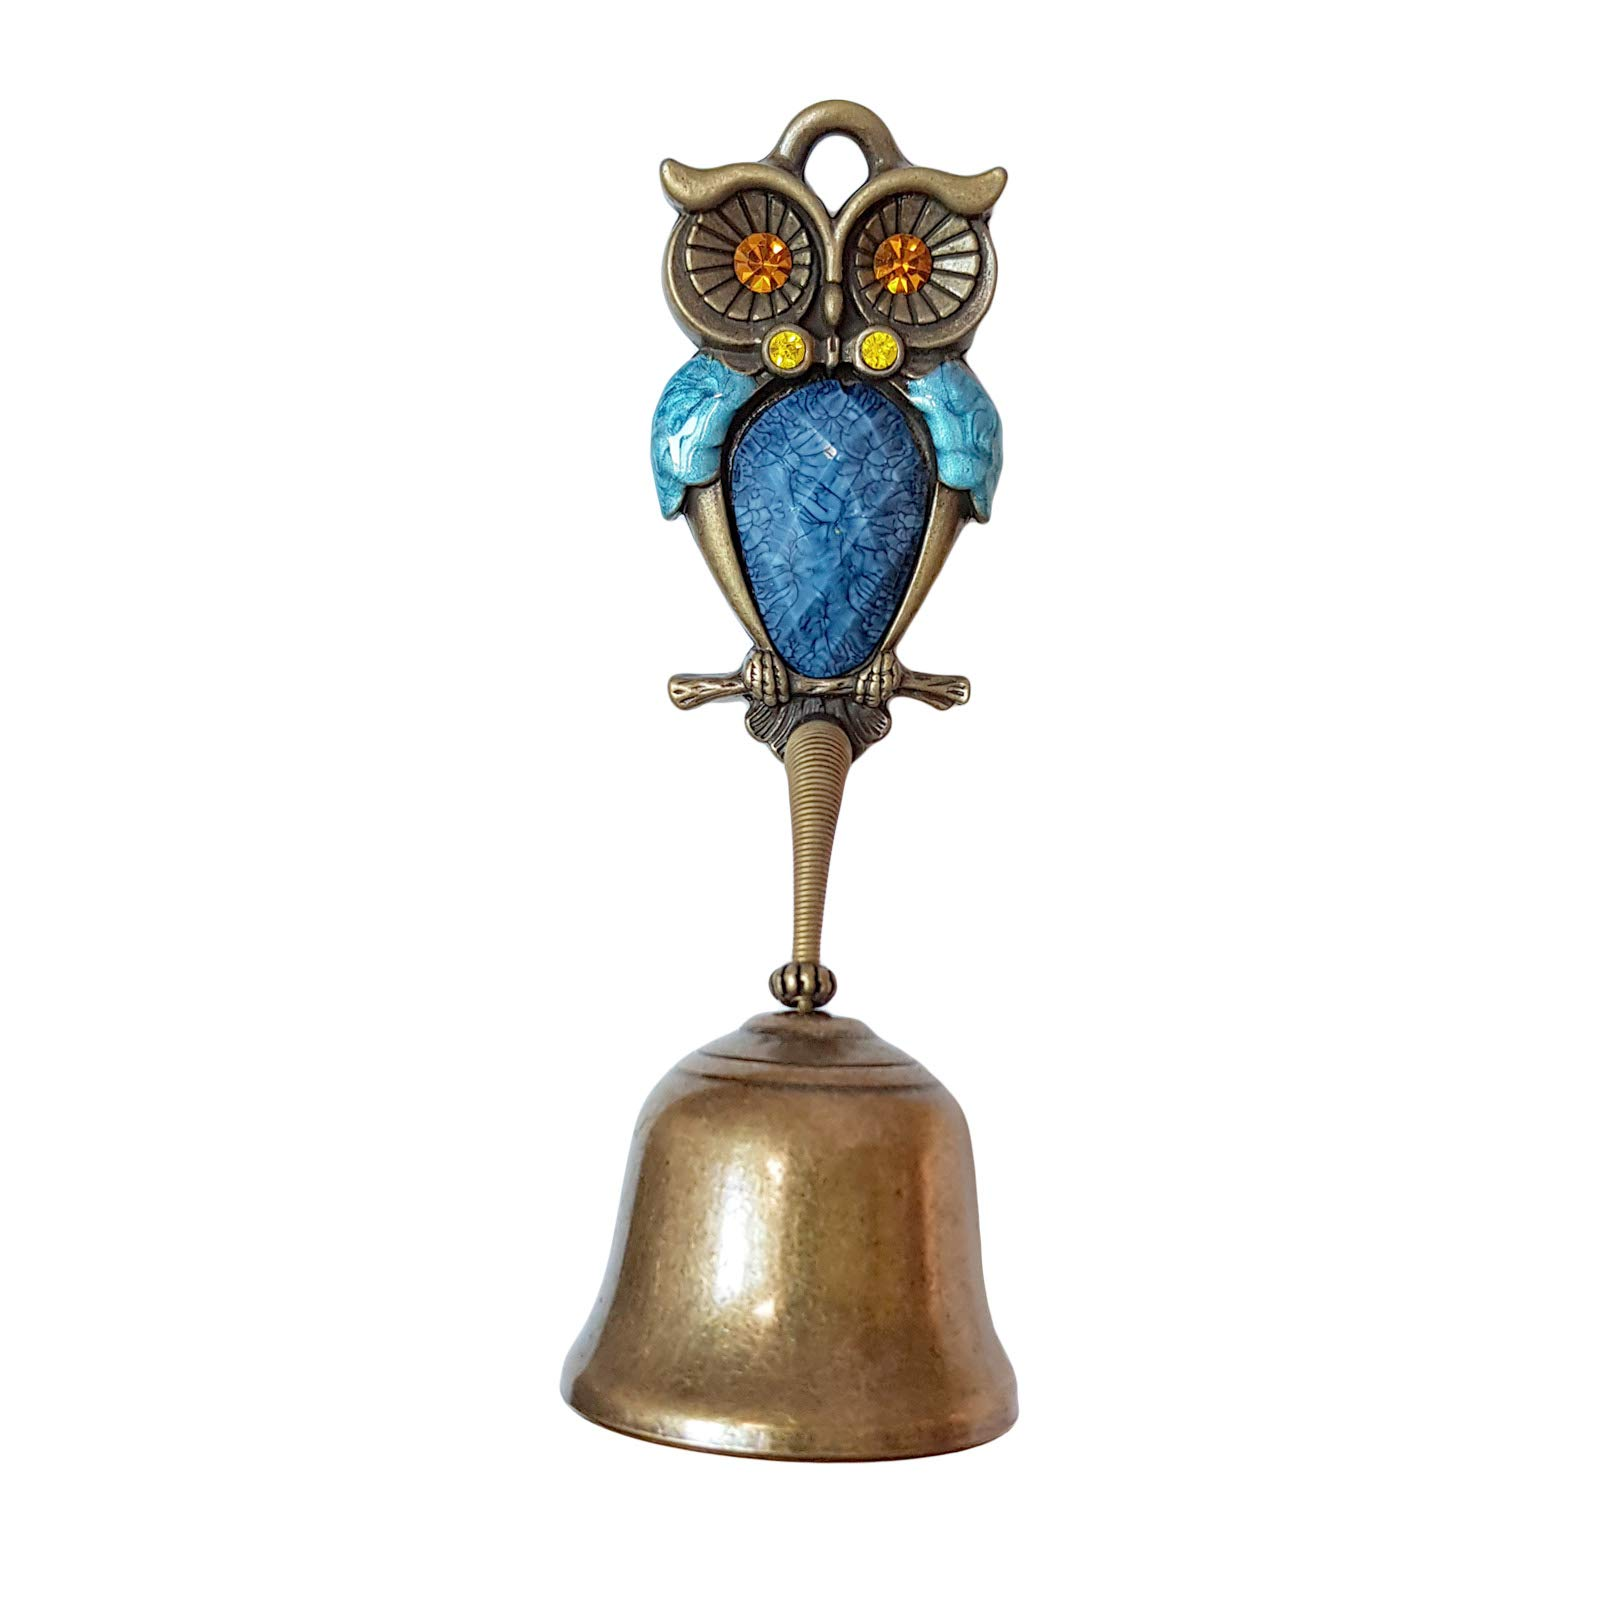 Owl Springy Shopkeepers Bell Entrance Alert Chime Compact & Lightweight Unique Design Home Decoration Doorbell B-Type (Blue)